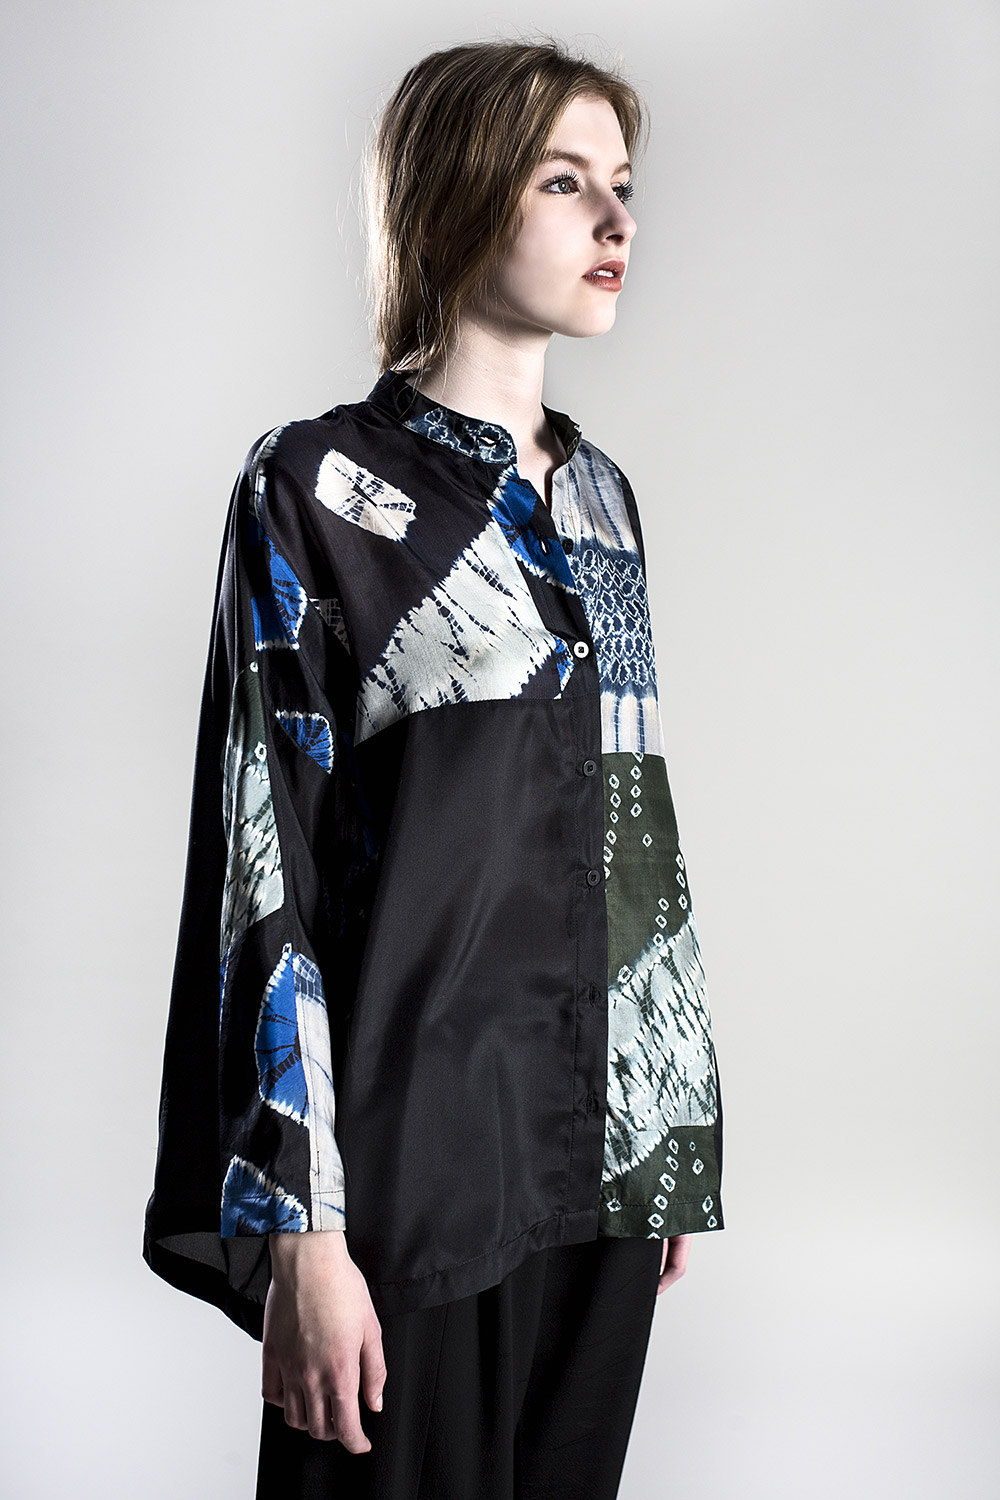 Above: Example of pairing a couple of vintage fabrics – Japan Shirt in Mixed Tie-dyed Silks